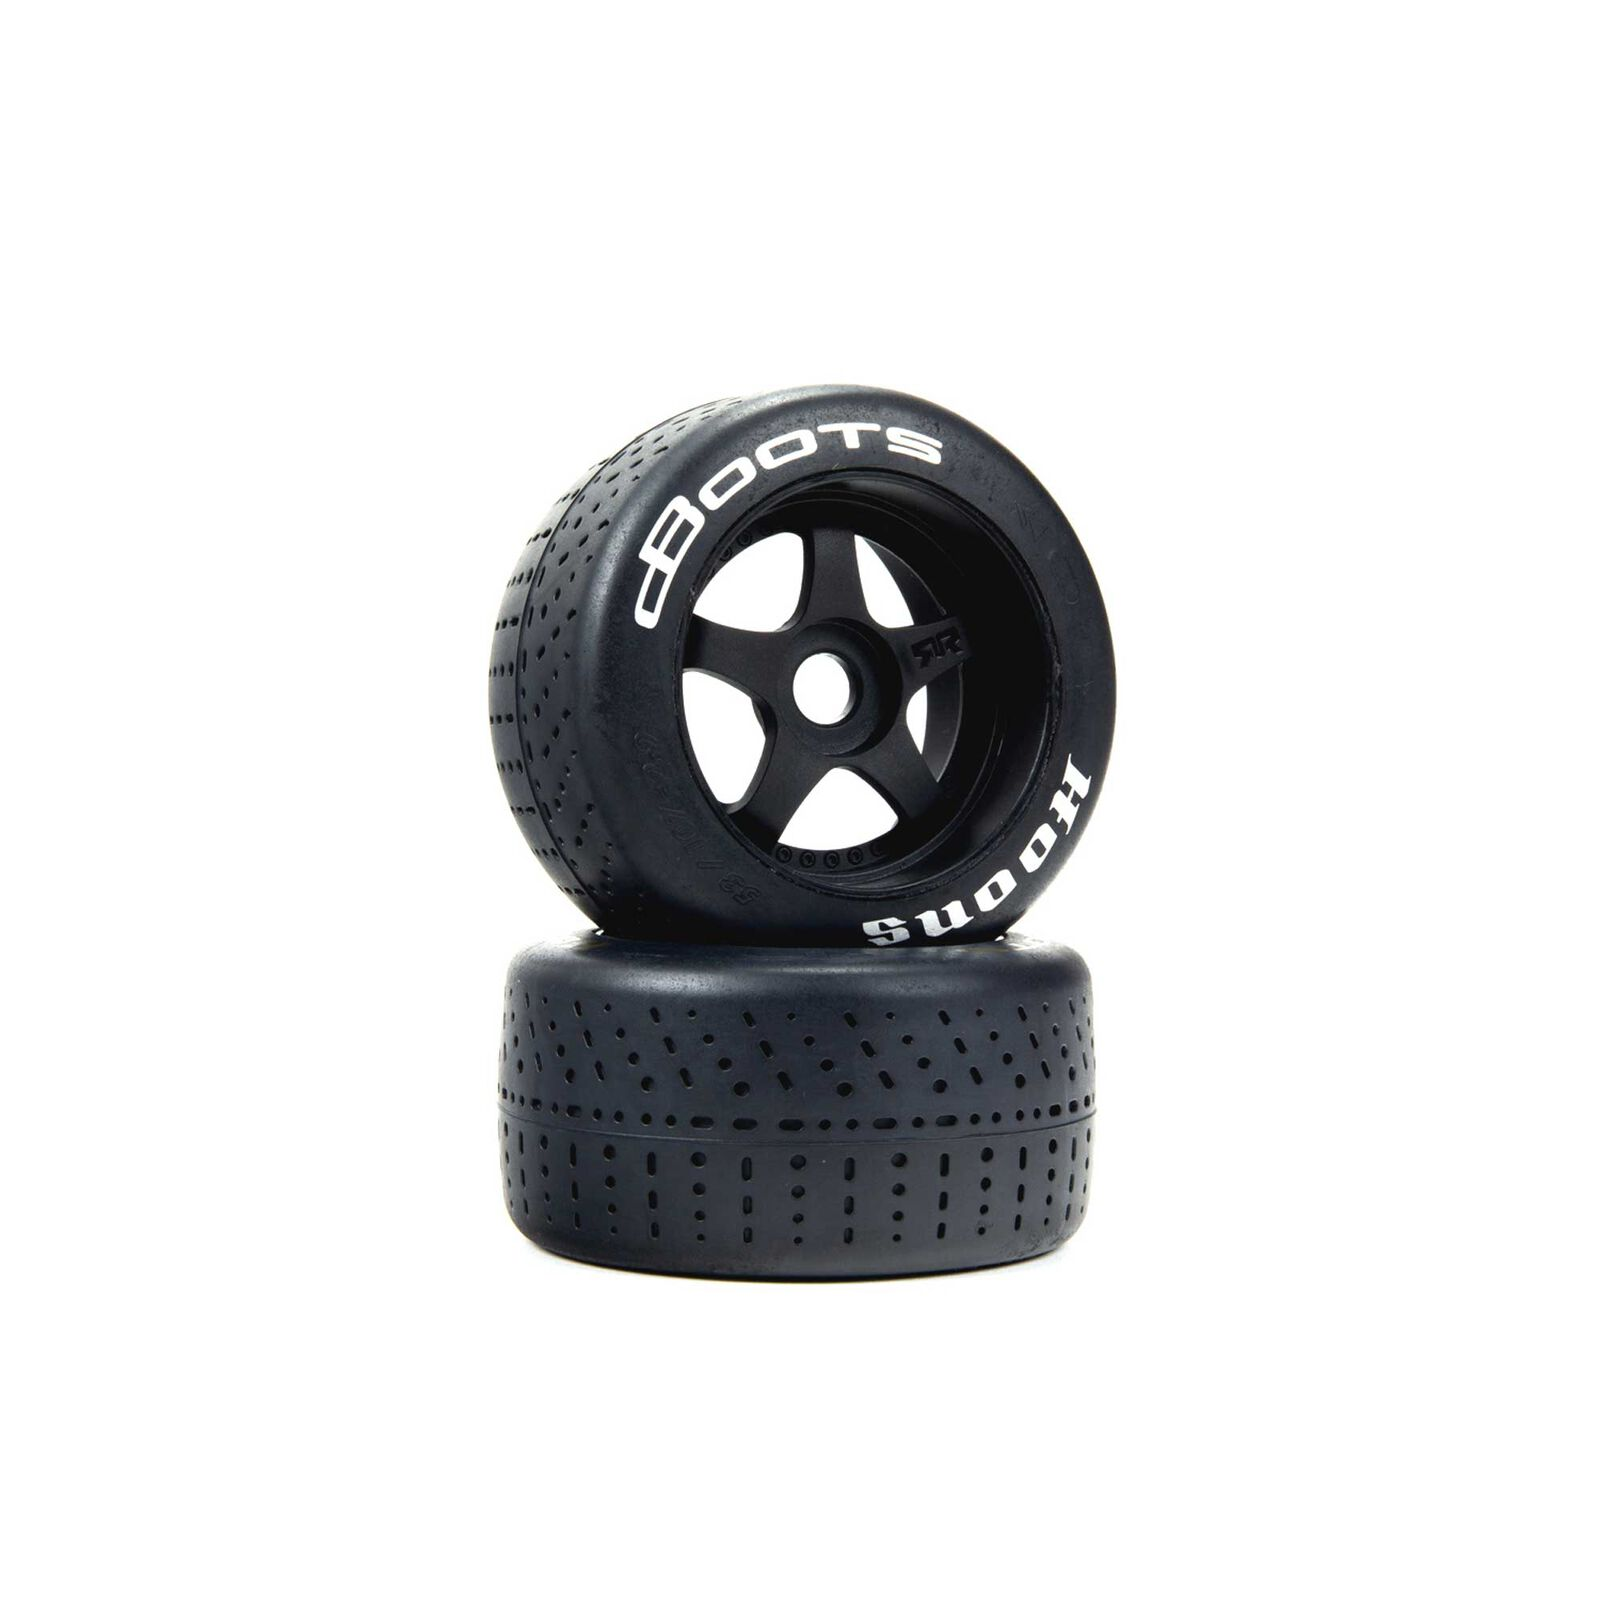 1/7 dBoots Hoons Rear 107 Silver Pre-Mounted Belted Tires, 17mm Hex (2)